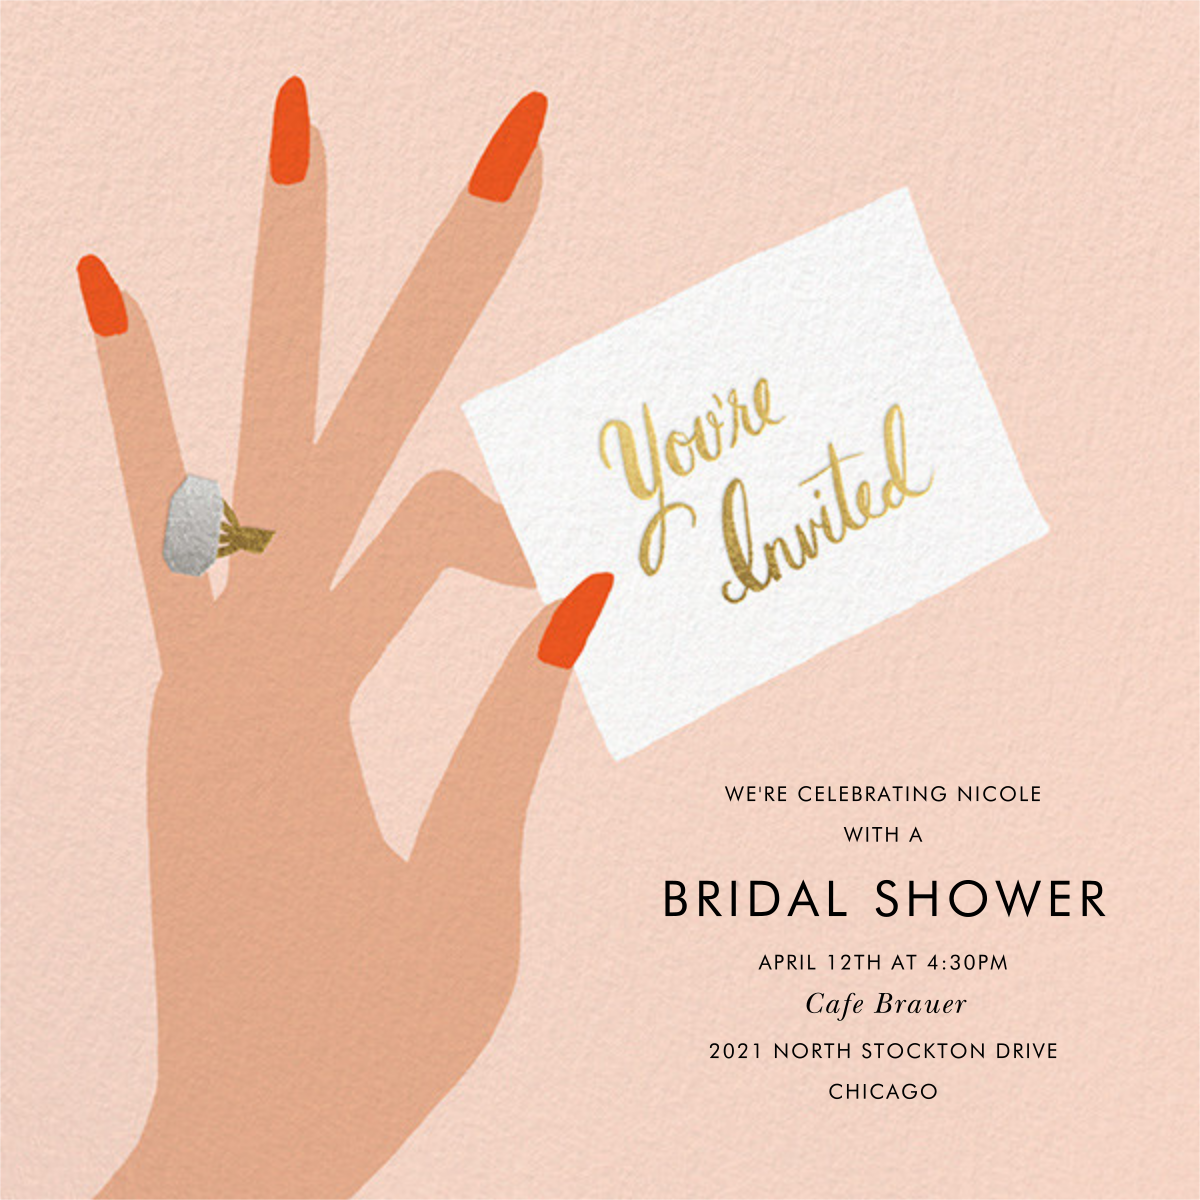 You're Invited Ring - Flame - Rifle Paper Co. - Bridal shower